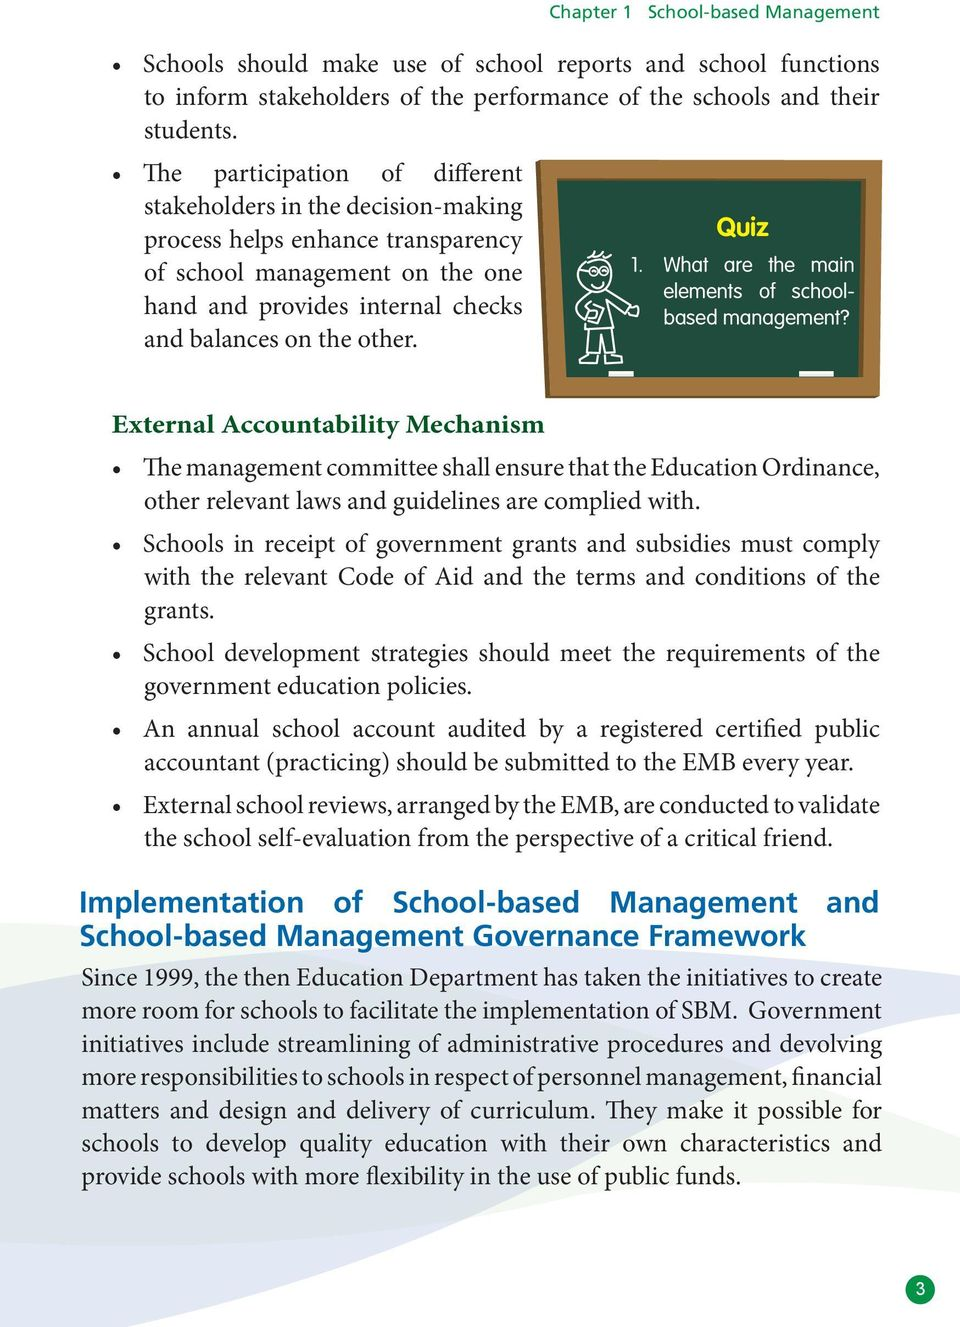 Quiz 1. What are the main elements of schoolbased management?